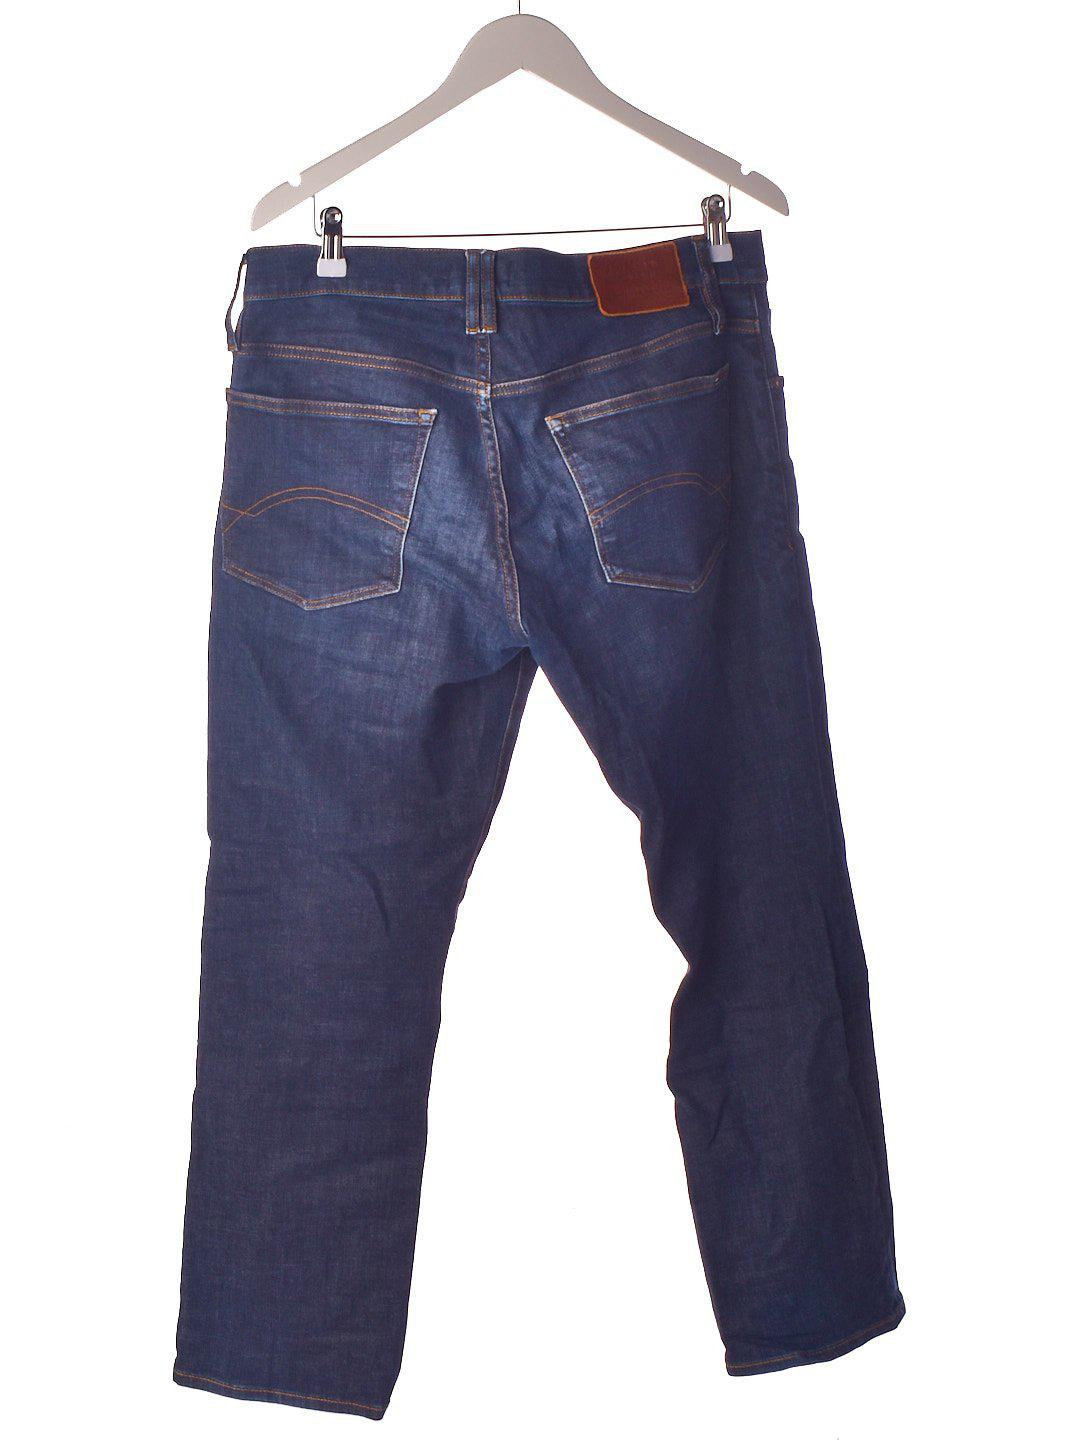 Original Straight jeans fra Hilfiger Denim